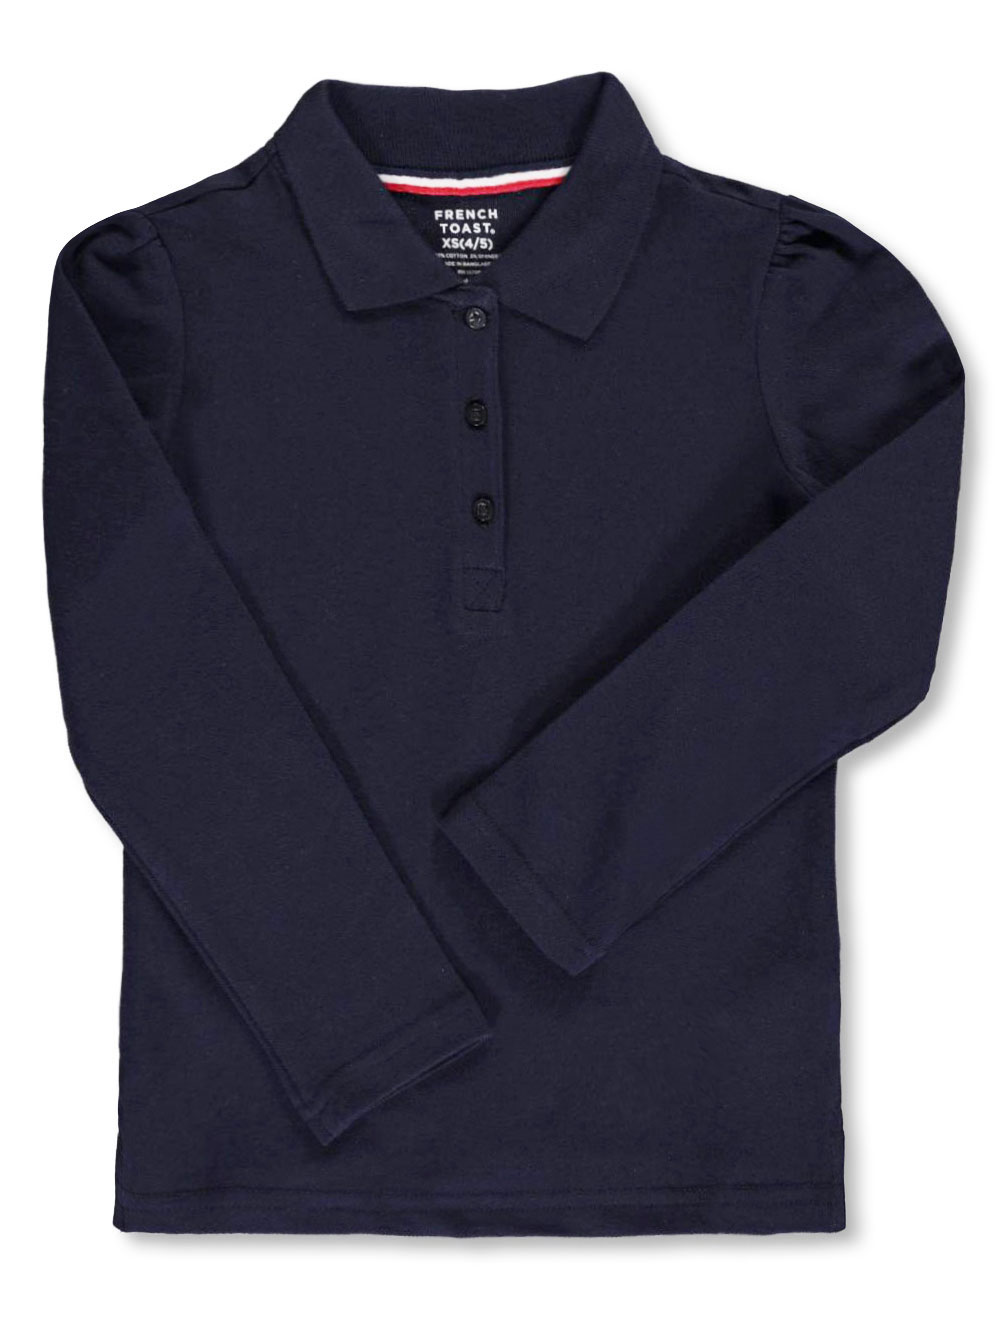 Knit Tops Long-Sleeved Polo Shirt